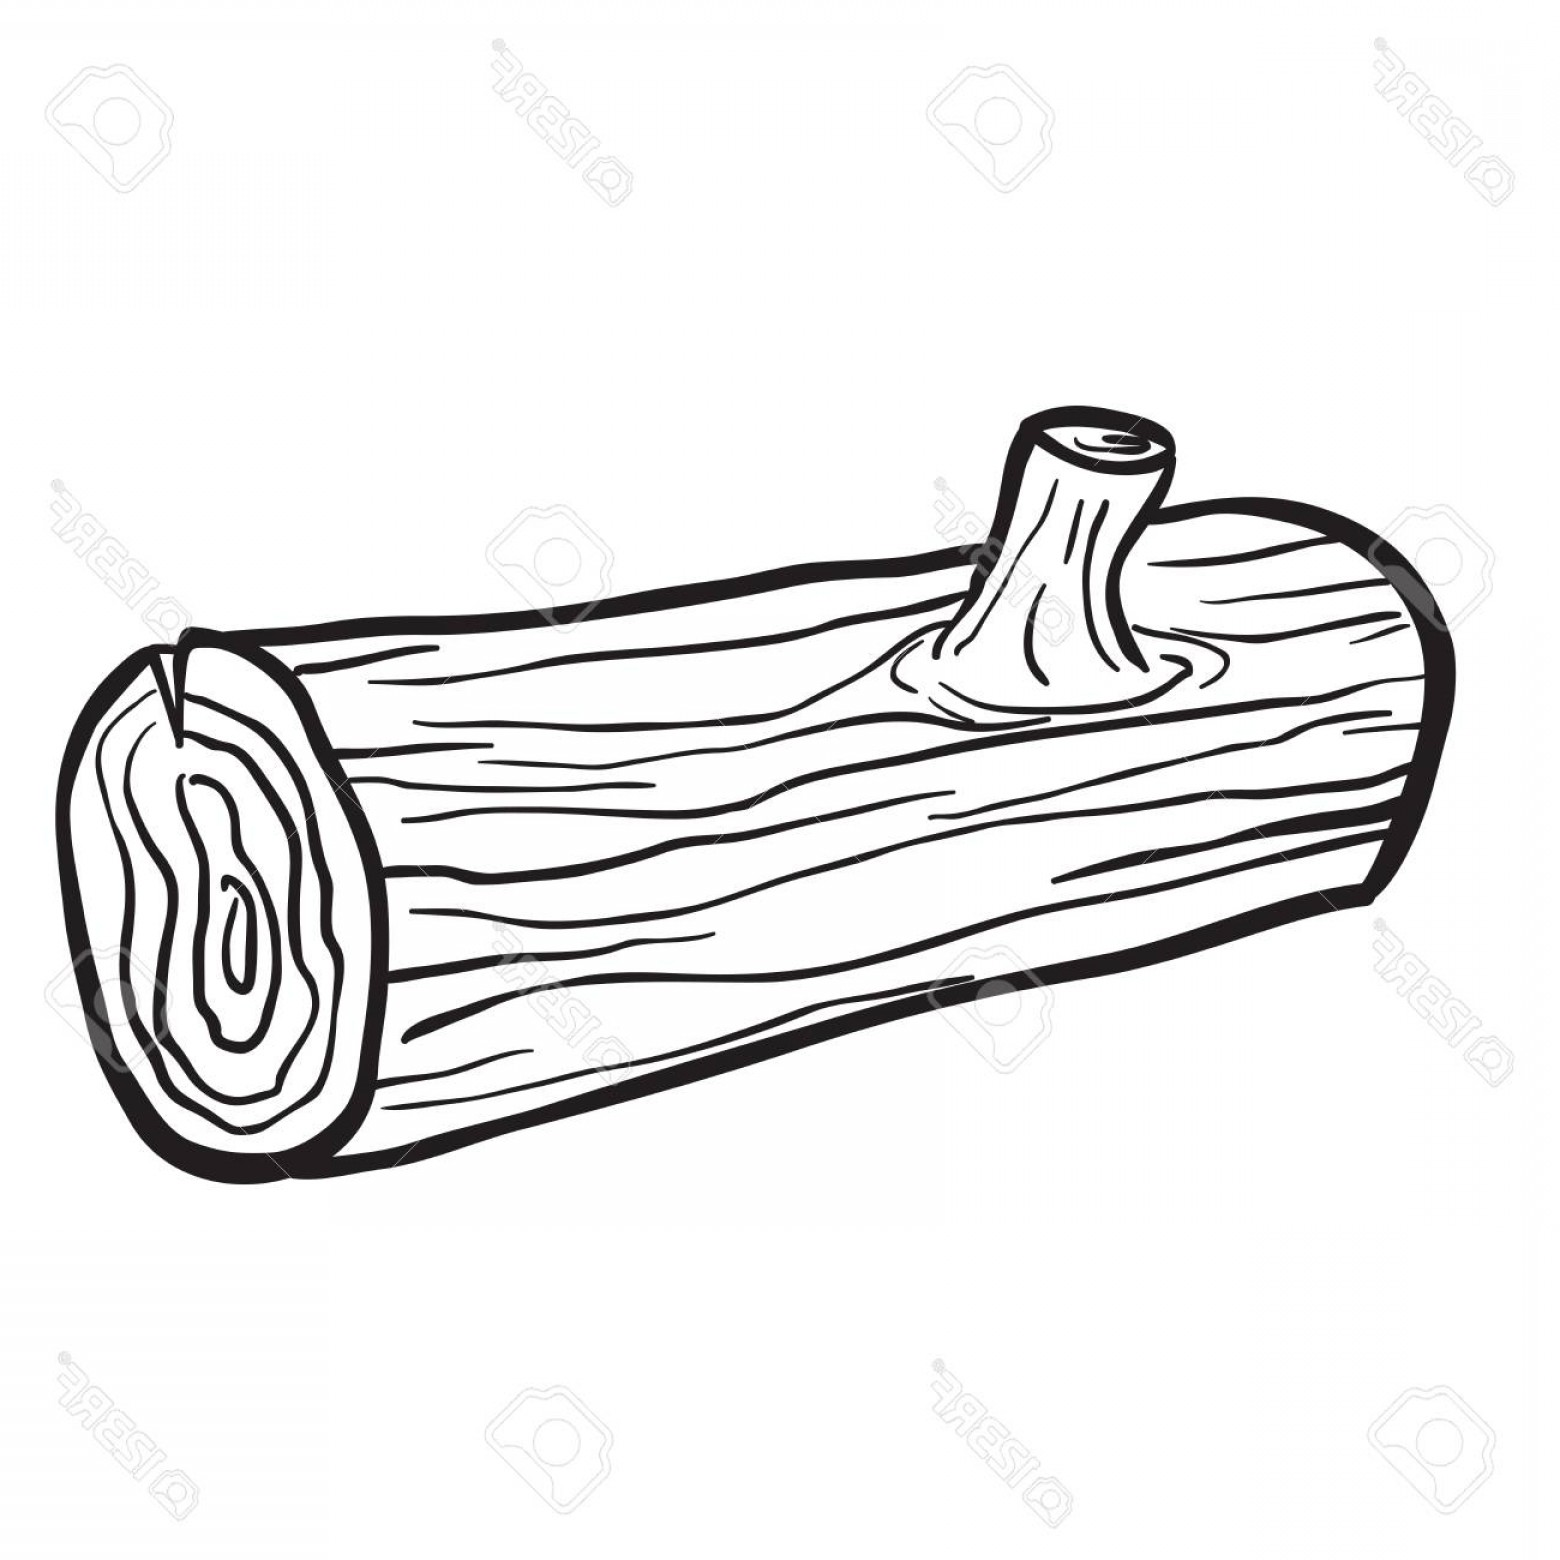 Photostock Vector Wooden Log Black And White Cartoon.